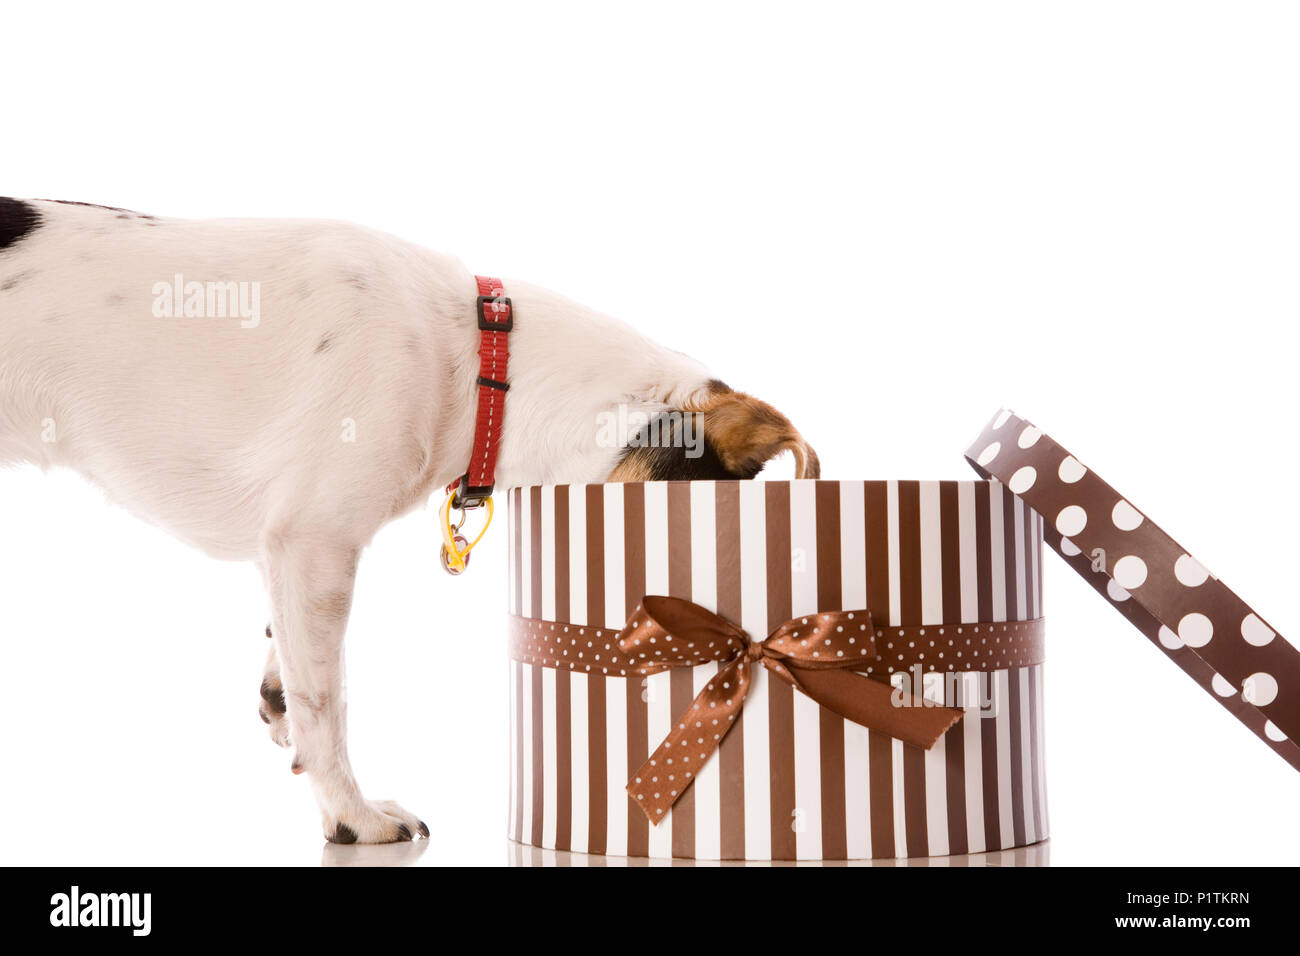 A pet dog opening a present, or being naughty and stealing from gift box. Stock Photo